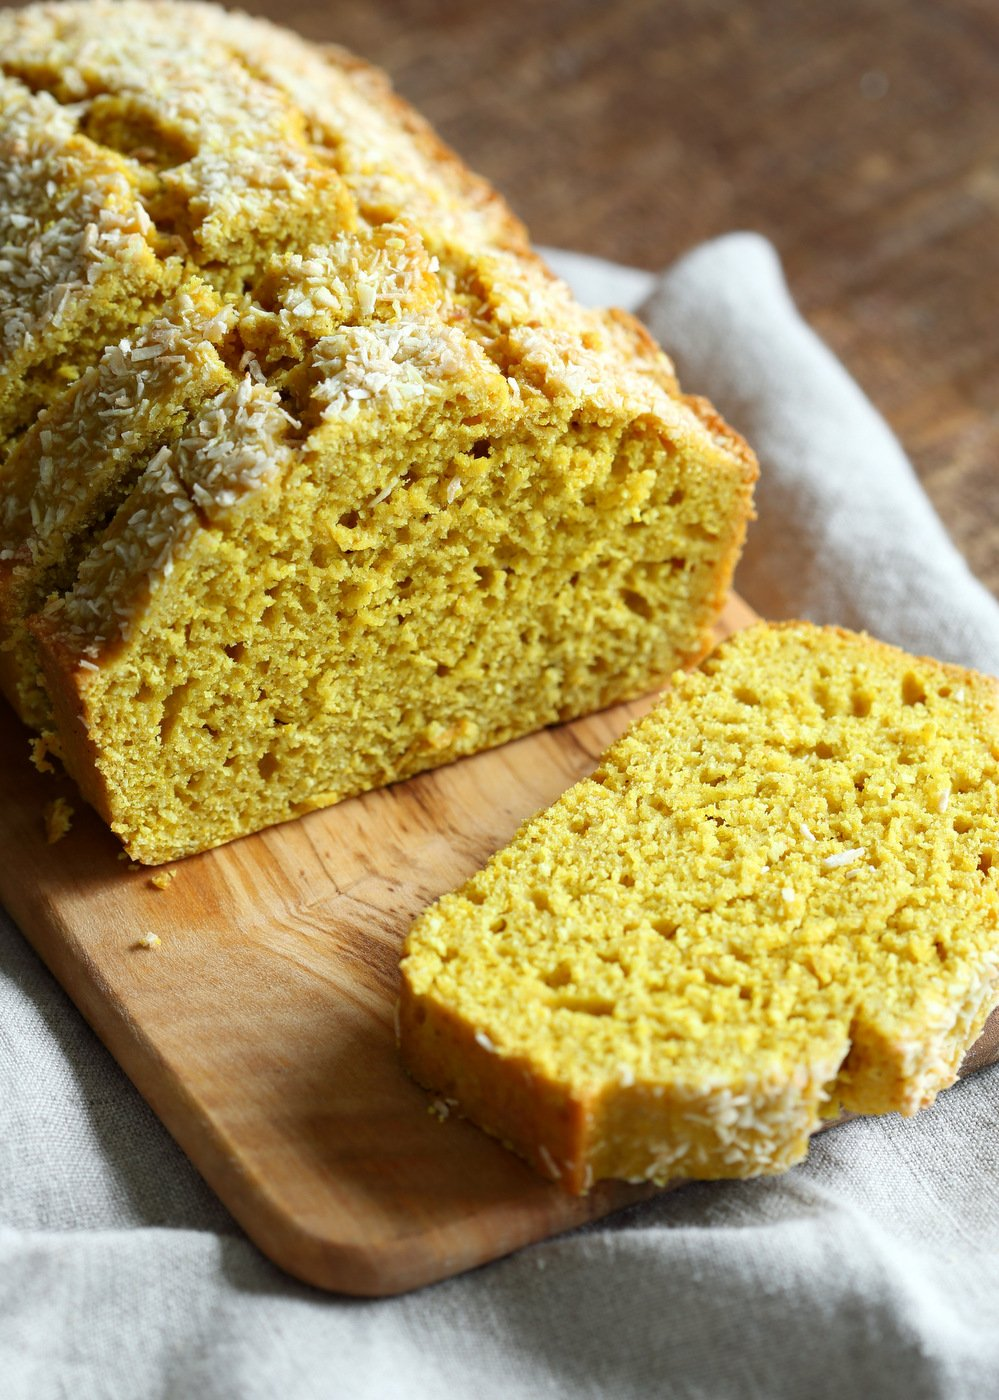 Easy 1 Bowl Coconut Turmeric Bread. Soft and Delicious 1 Bowl Golden Lemon Coconut loaf. No added oil in this cake. #Vegan #Nutfree Soyfree #Oilfree #Recipe.  #veganricha | VeganRicha.com